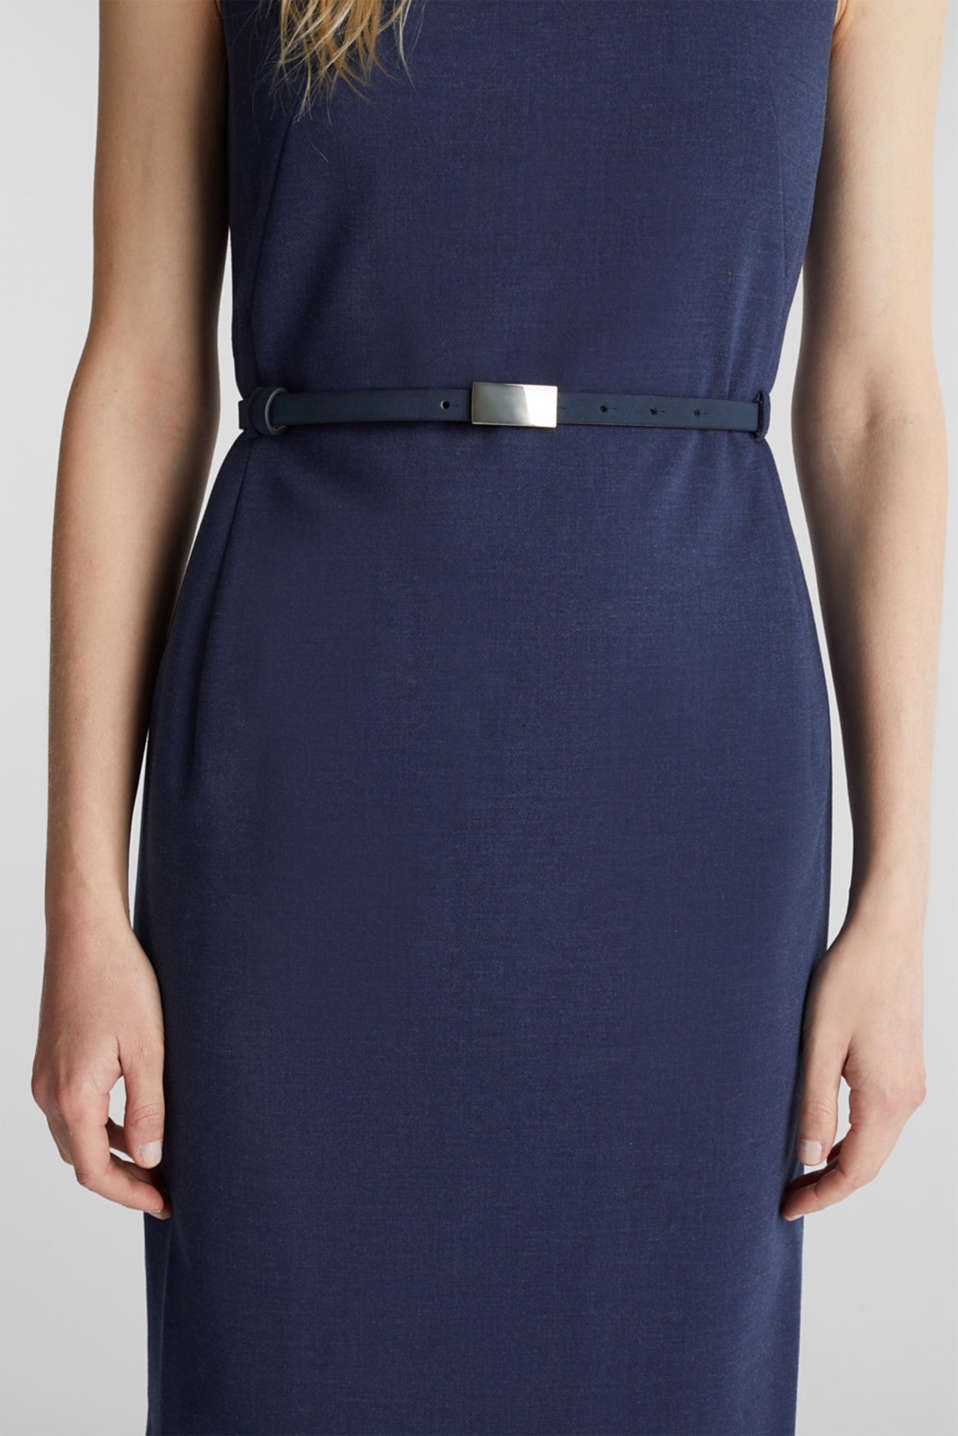 Sheath dress with a buckled belt, GREY BLUE 5, detail image number 2